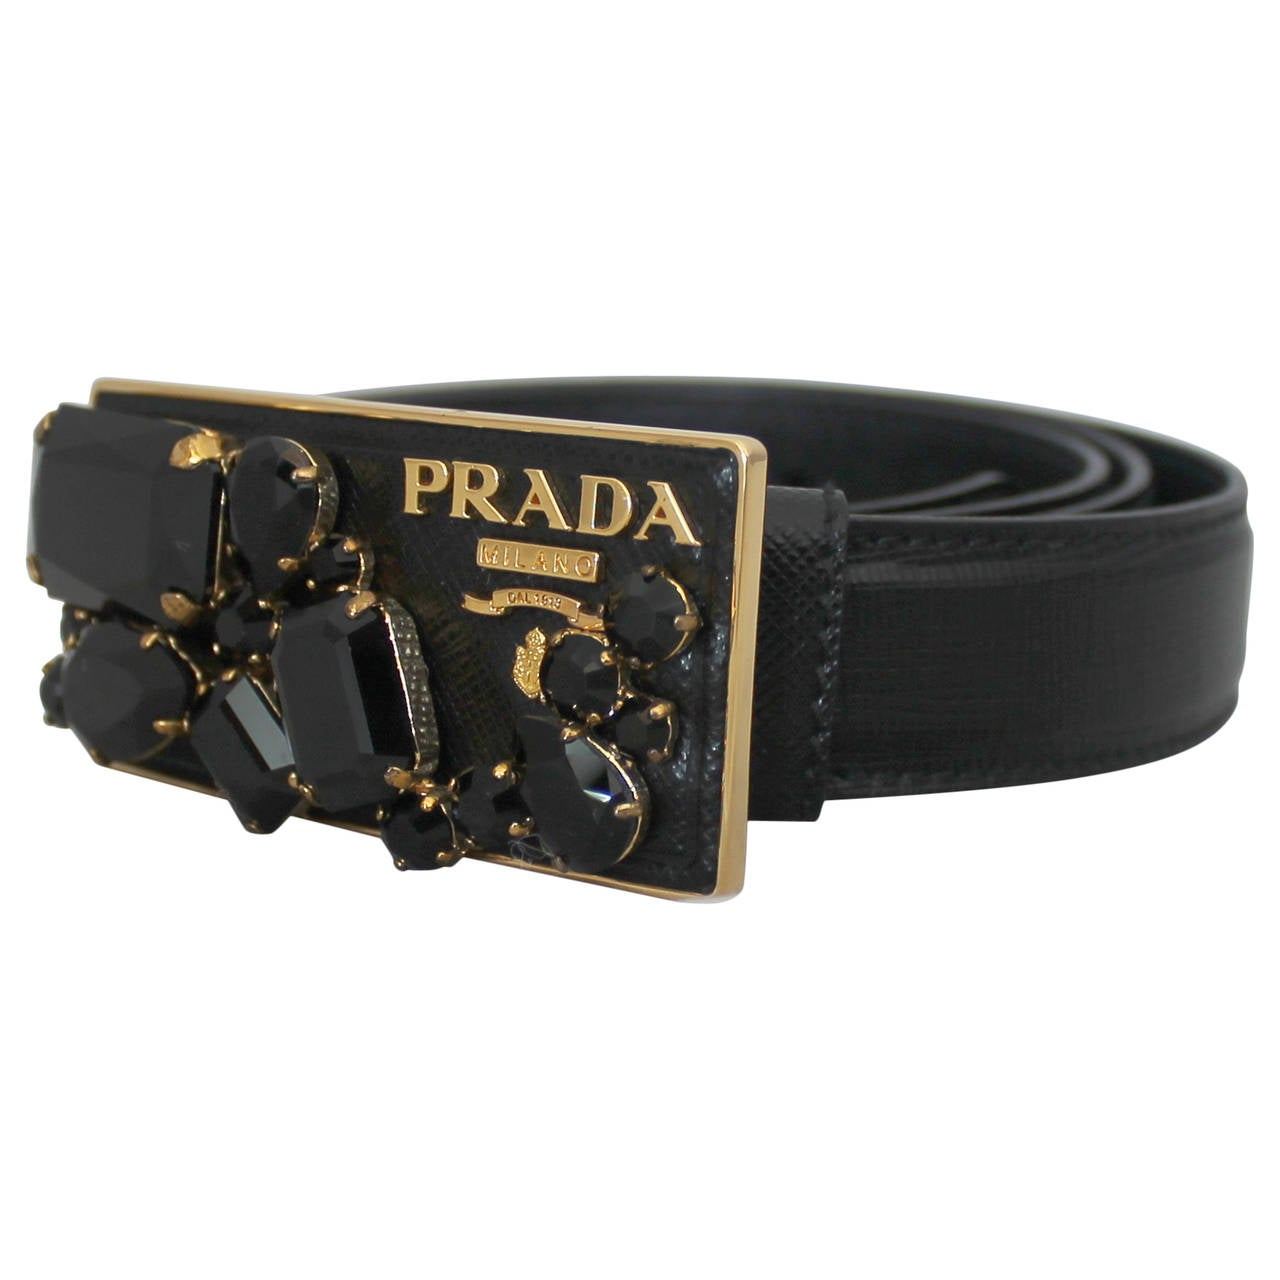 Prada Black Saffiano Leather Belt with Gold Rhinestone Buckle For ...